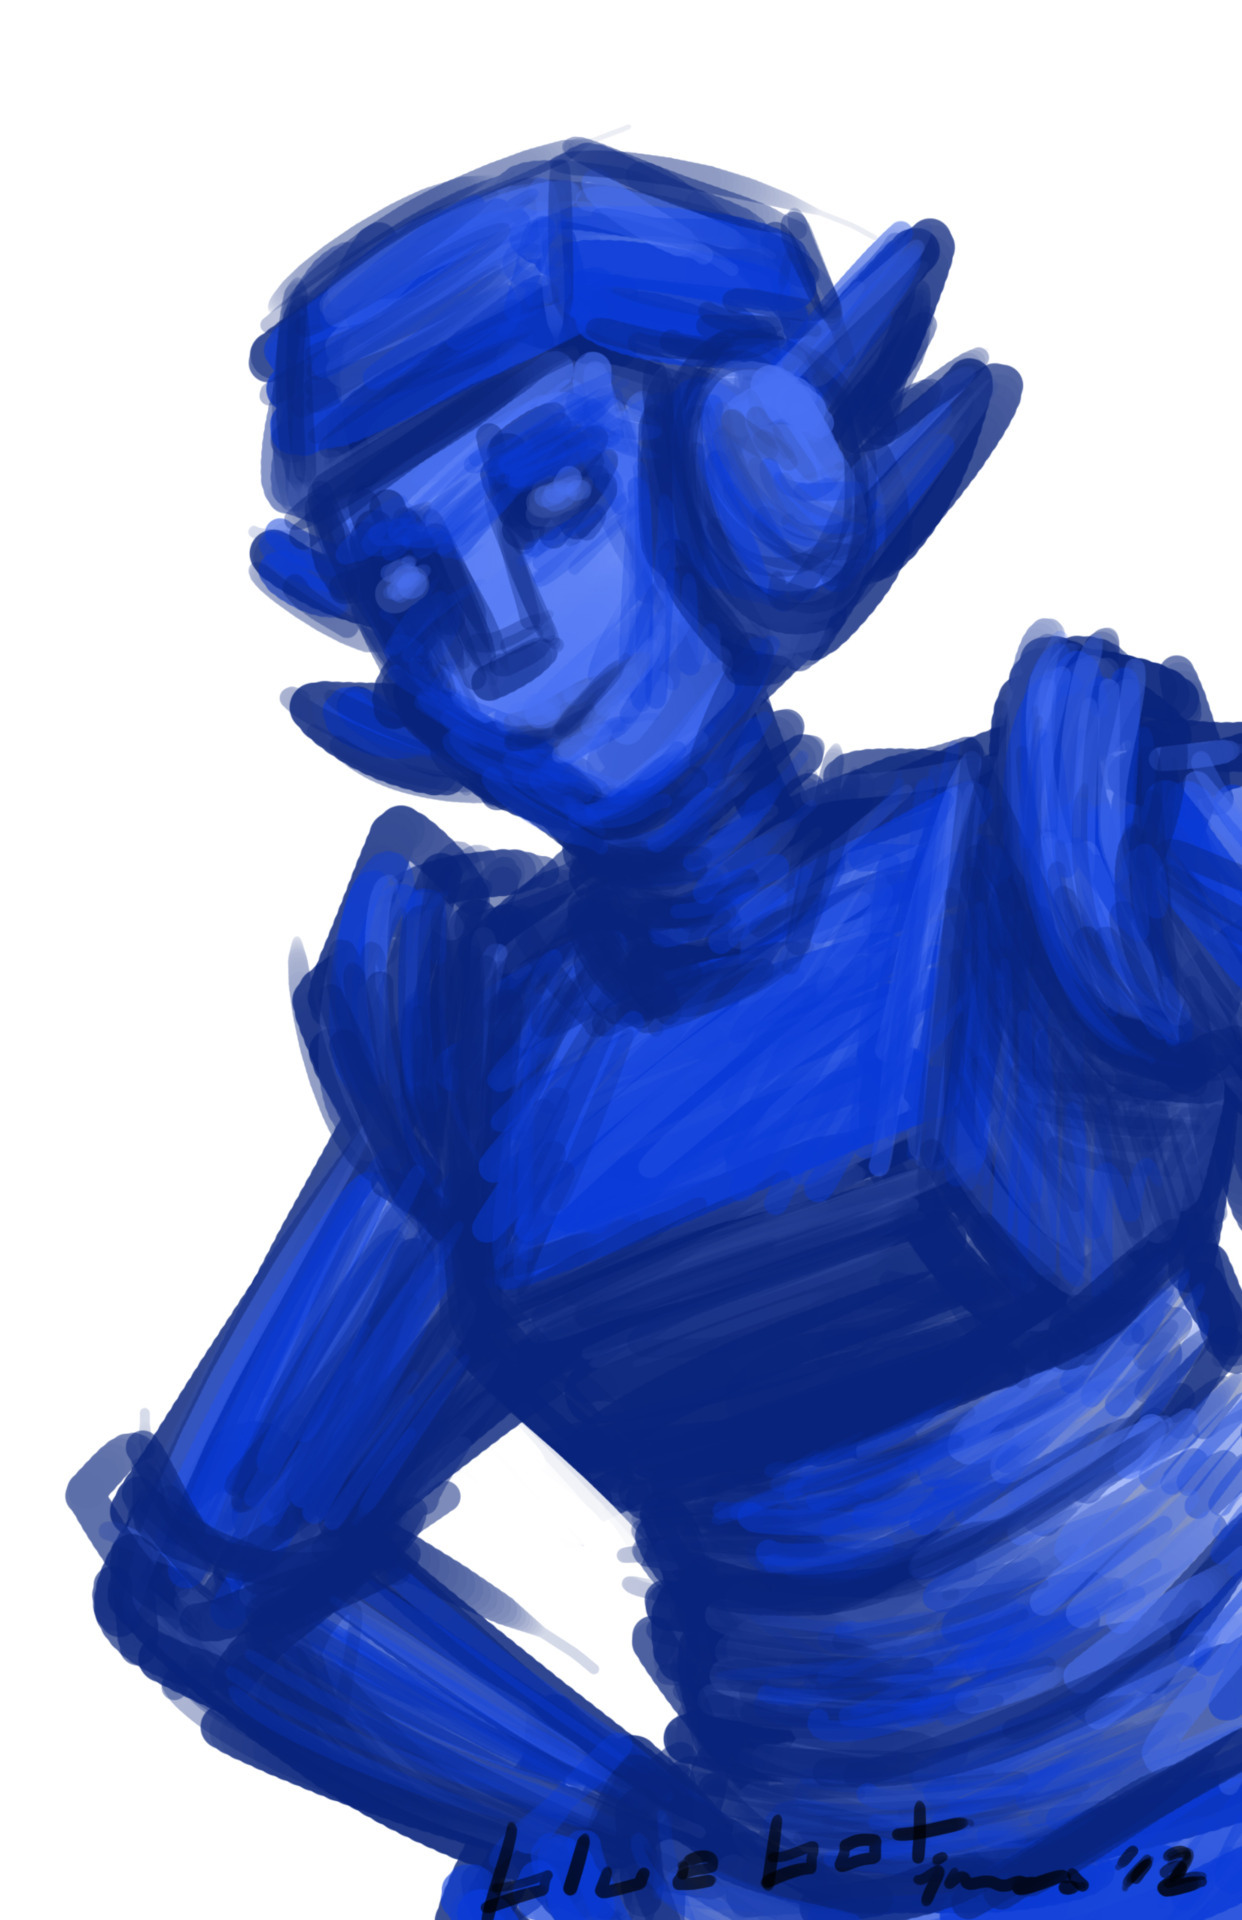 Bluebot speed…paint? I have no clue what to call it. I probably am speedpainting and just not knowing it. @____@""